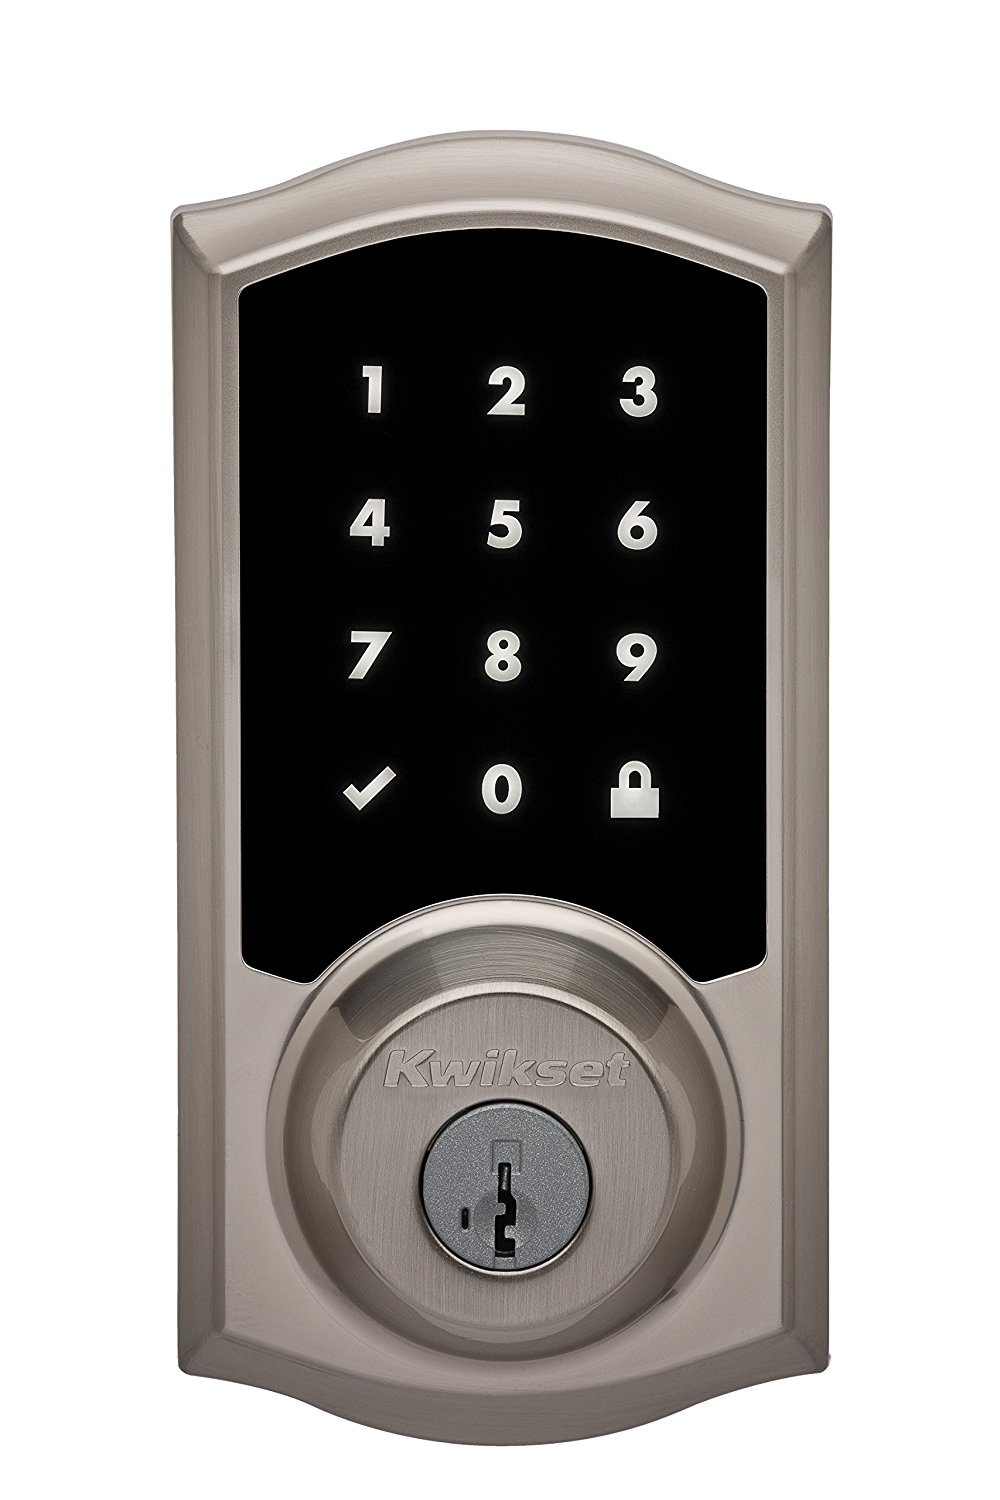 Kwikset Premis Touchscreen Smart